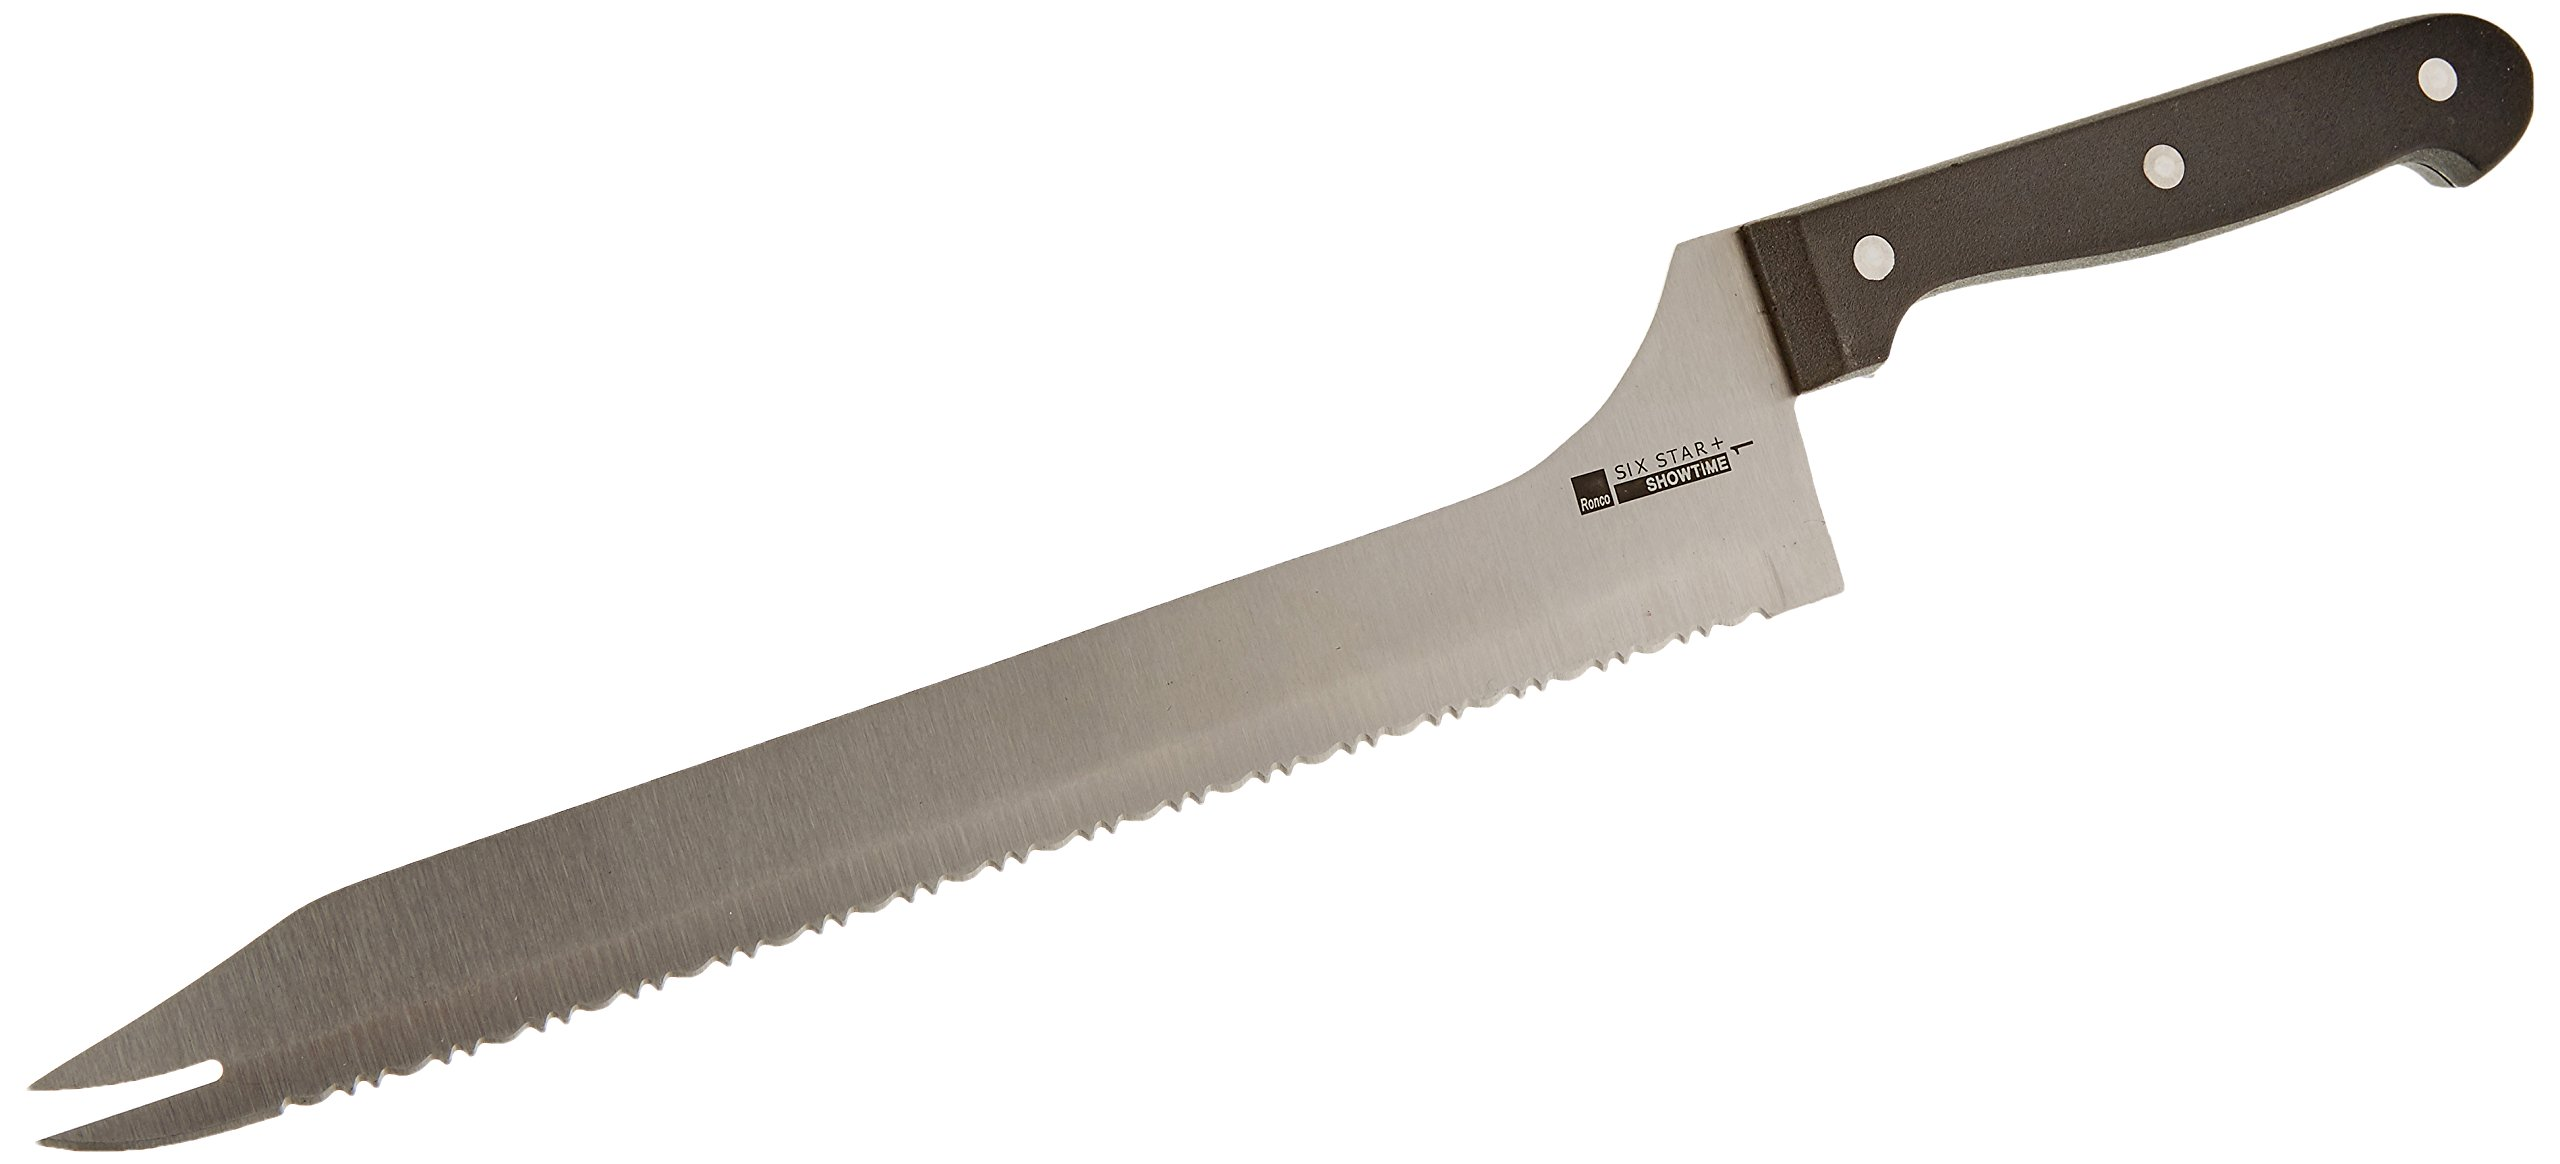 Ronco Showtime Knife